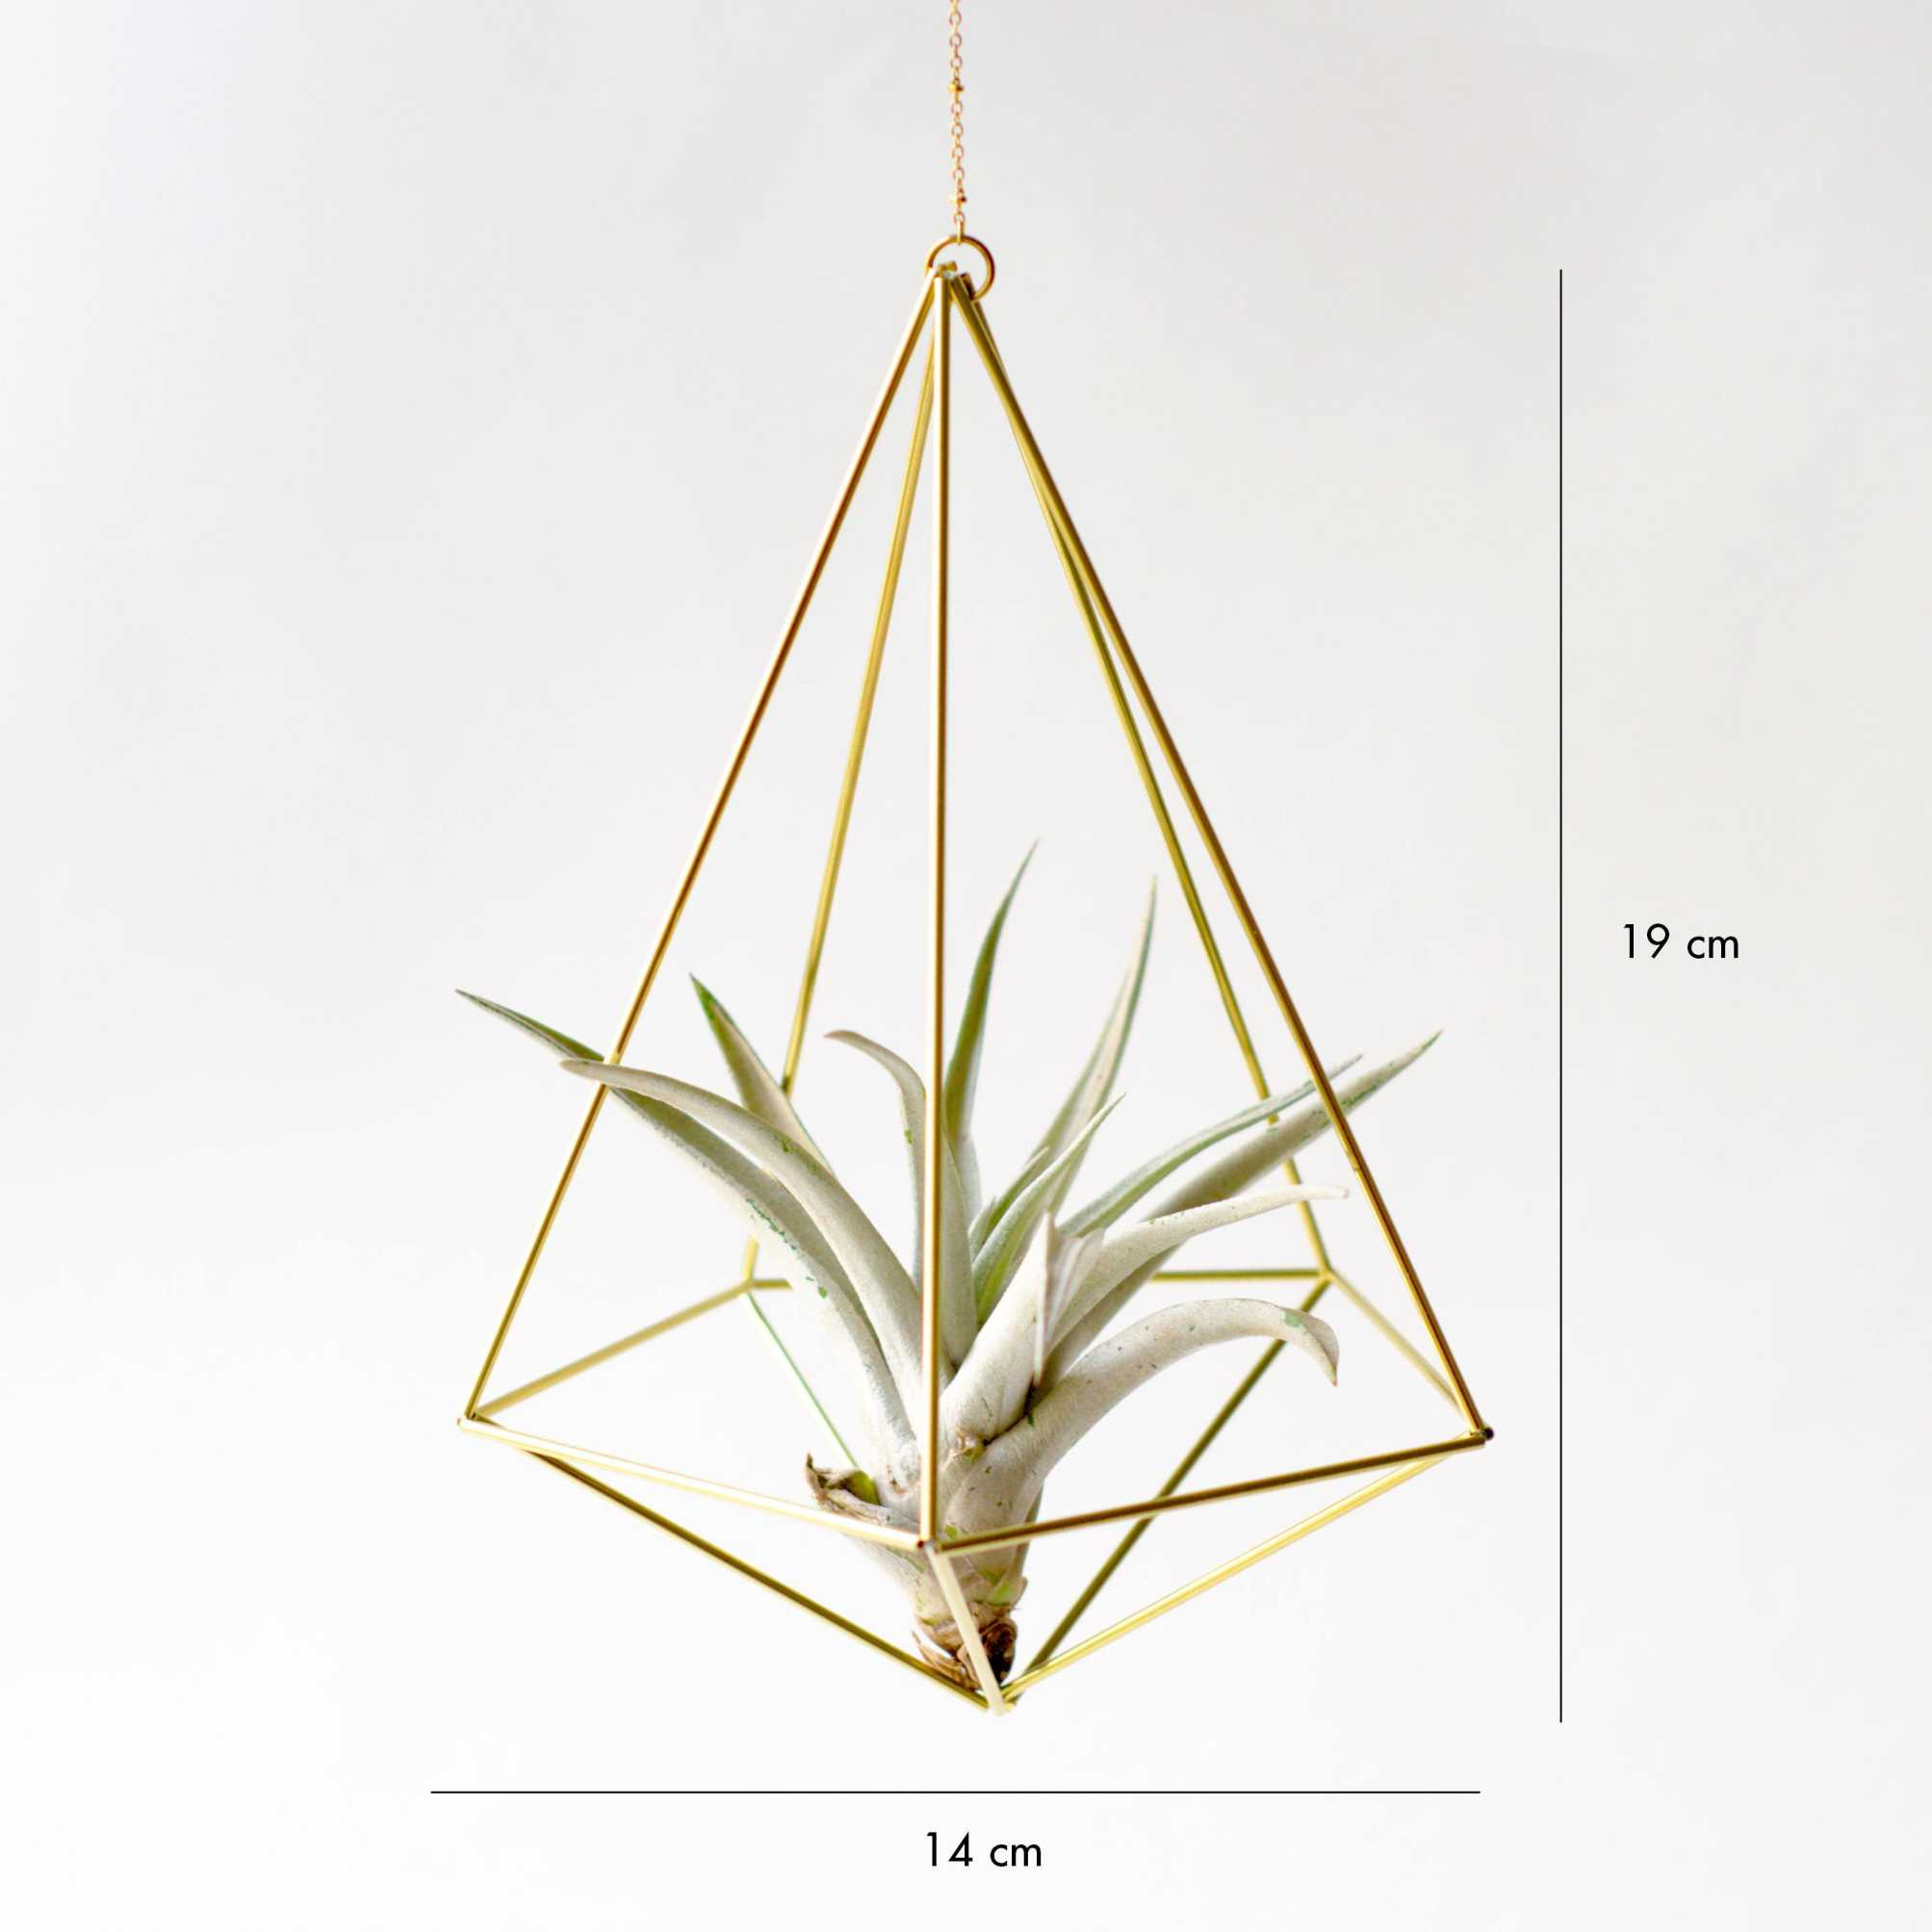 Brass Air plant Holder - Himmeli Decahedron No.02 Himmeli Fuxigold